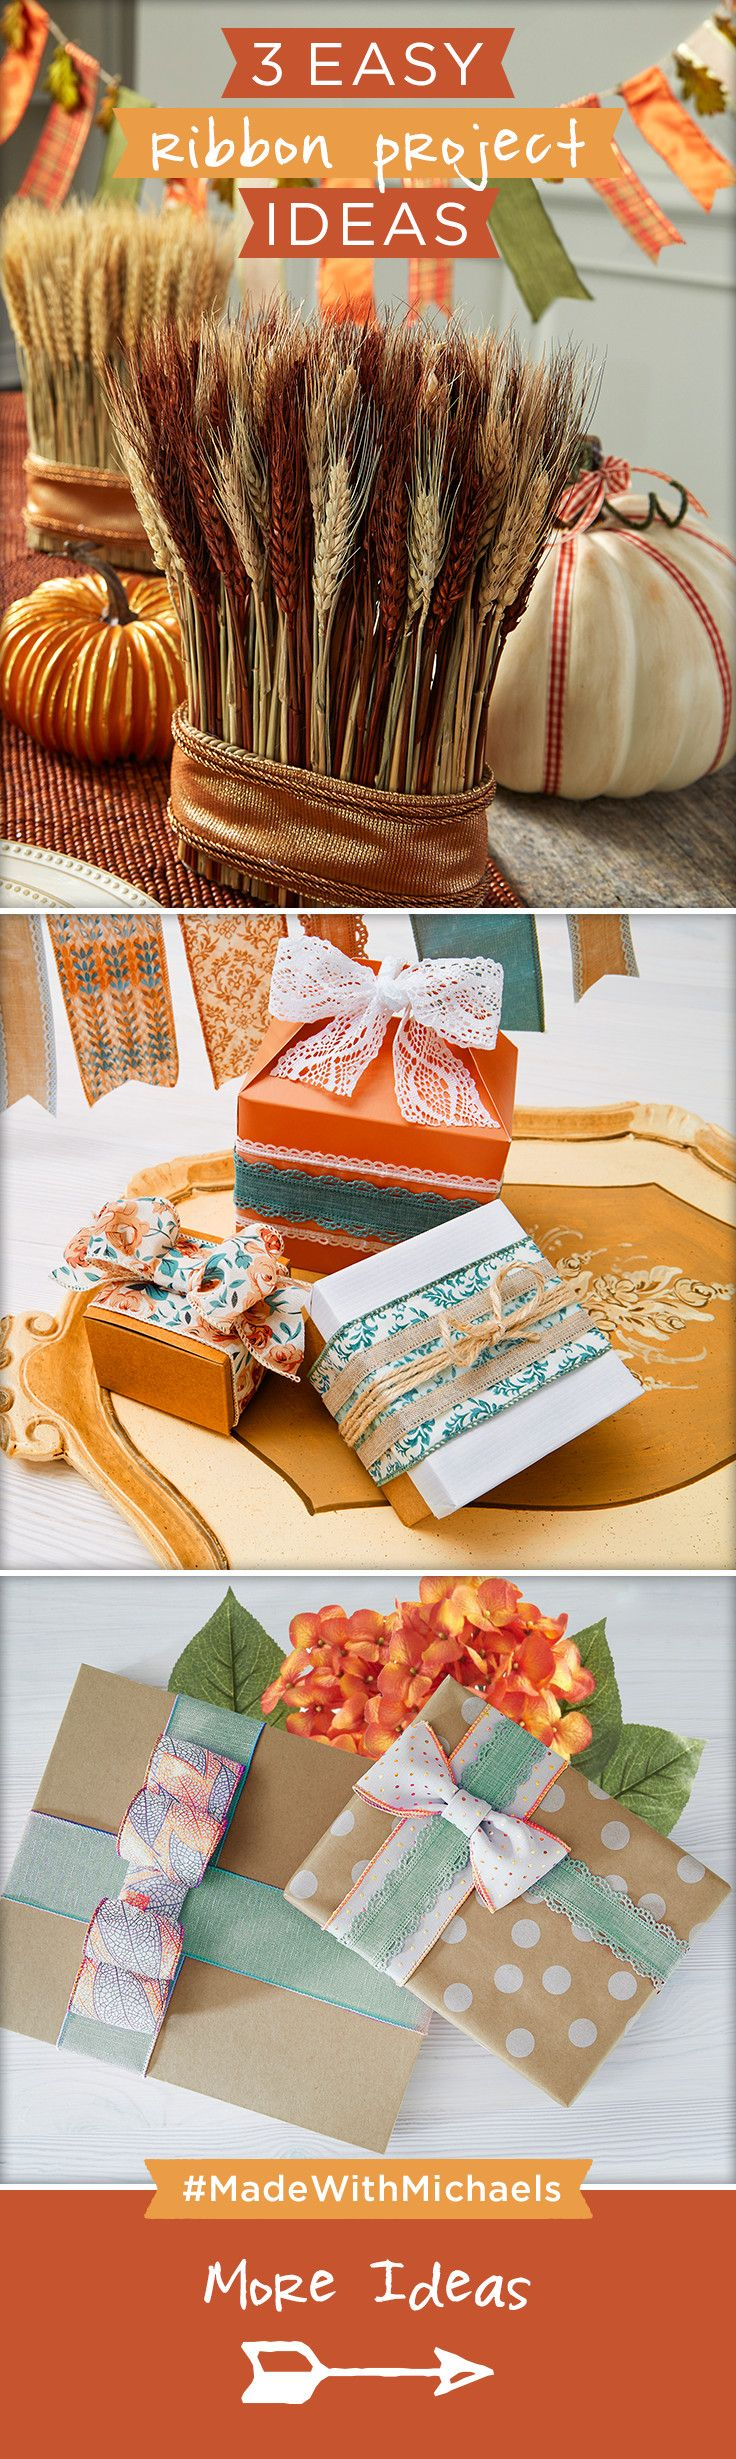 330 best fall ideas images on pinterest fall decorations fall dress up gifts or your home decor this fall with these easy ribbon project ideas